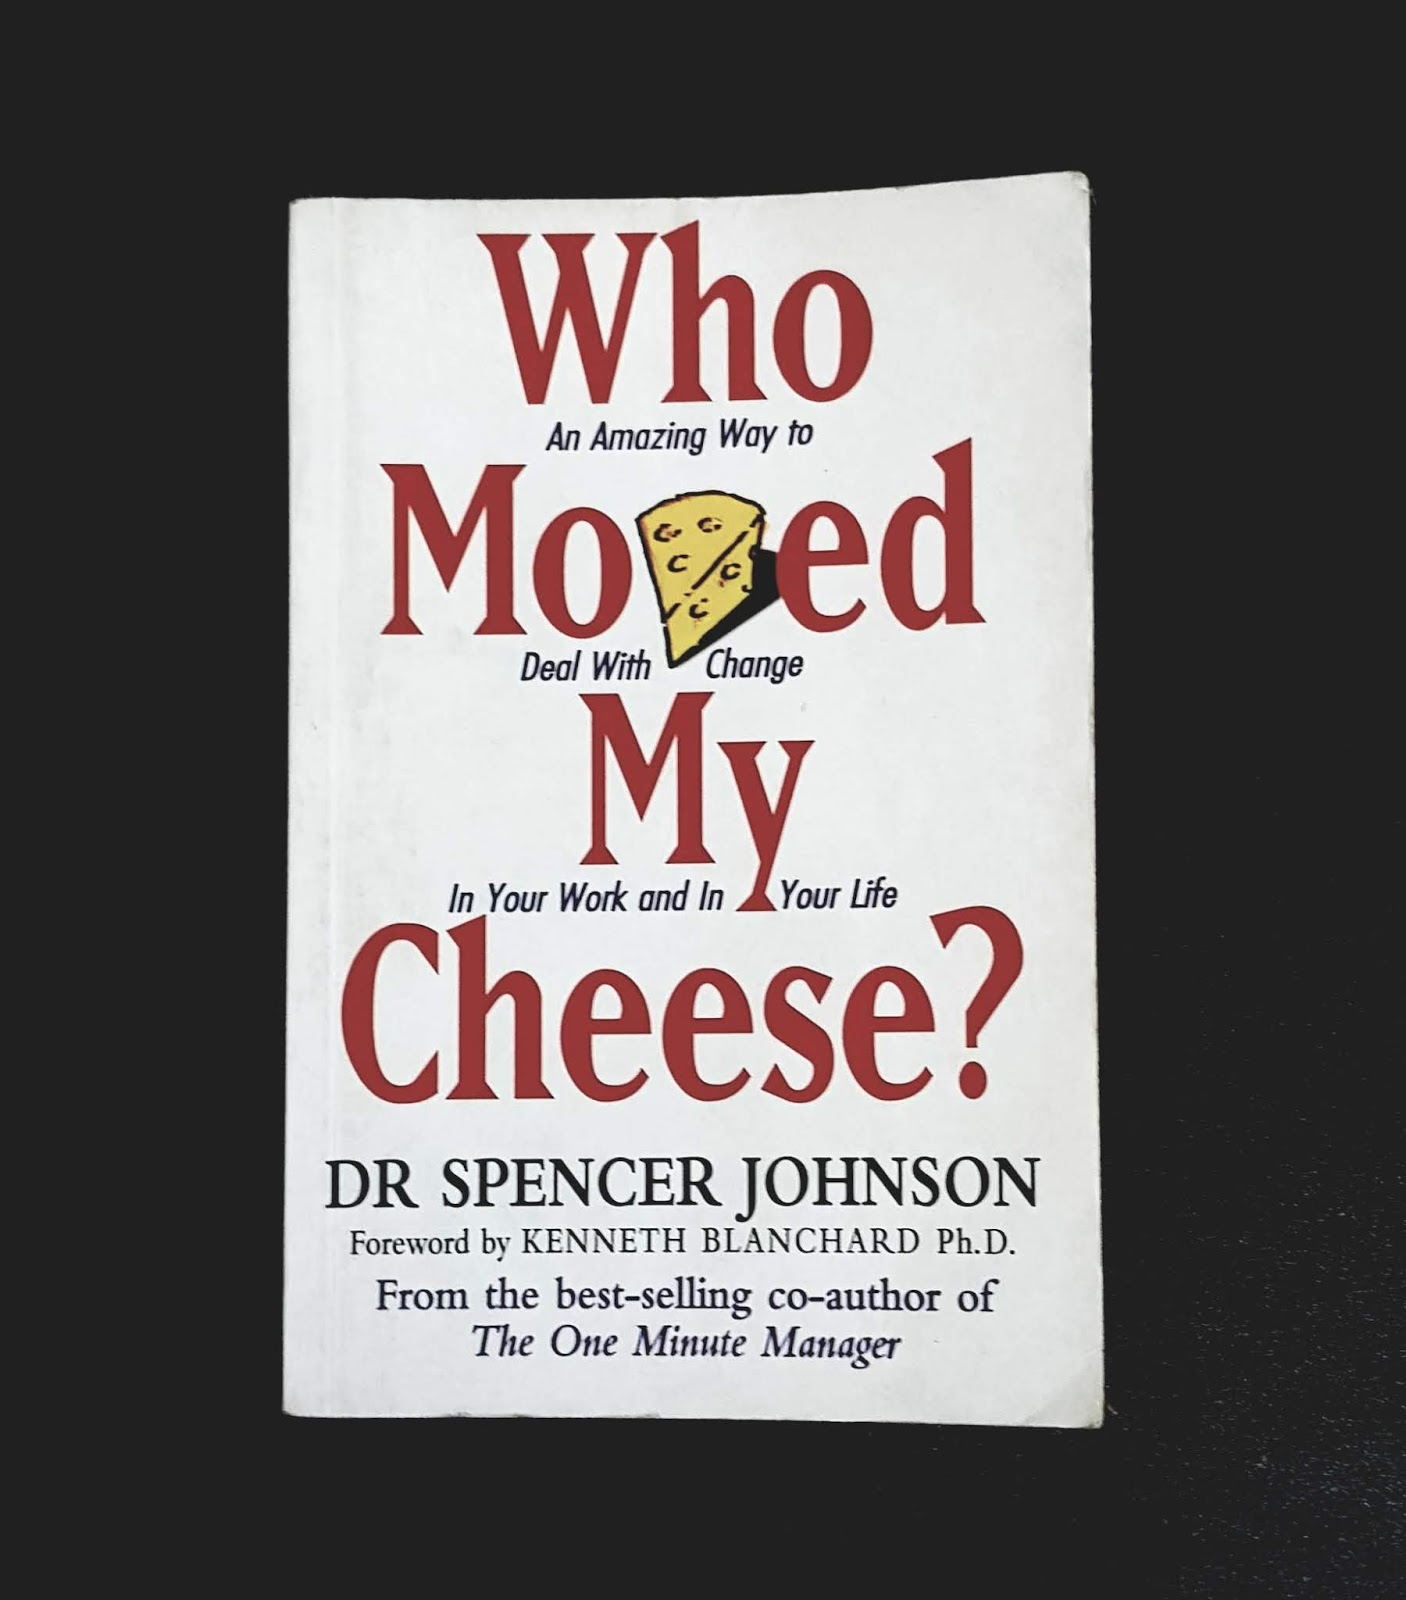 a review of the book who moved my cheese